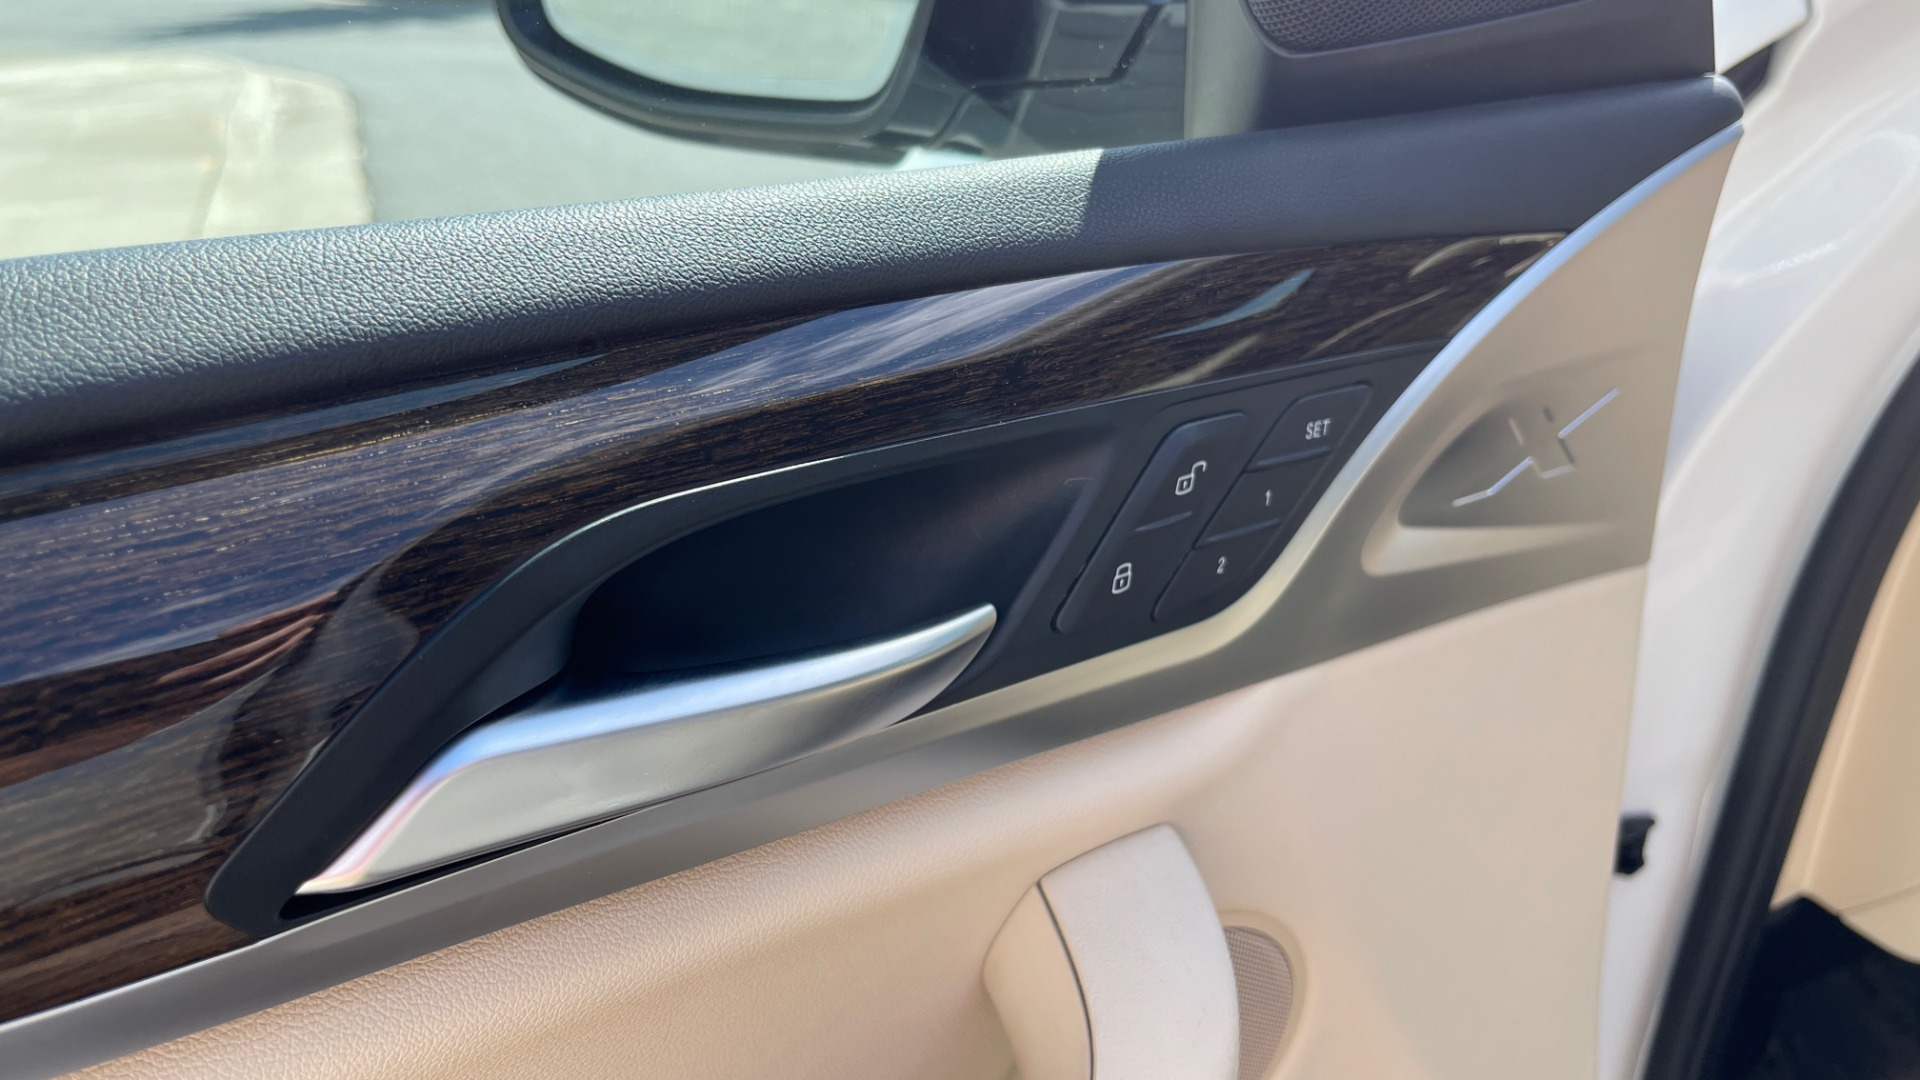 Used 2018 BMW X3 XDRIVE30I CONVENIENCE PKG / HEATED FRONT SEATS / REARVIEW for sale $36,595 at Formula Imports in Charlotte NC 28227 29